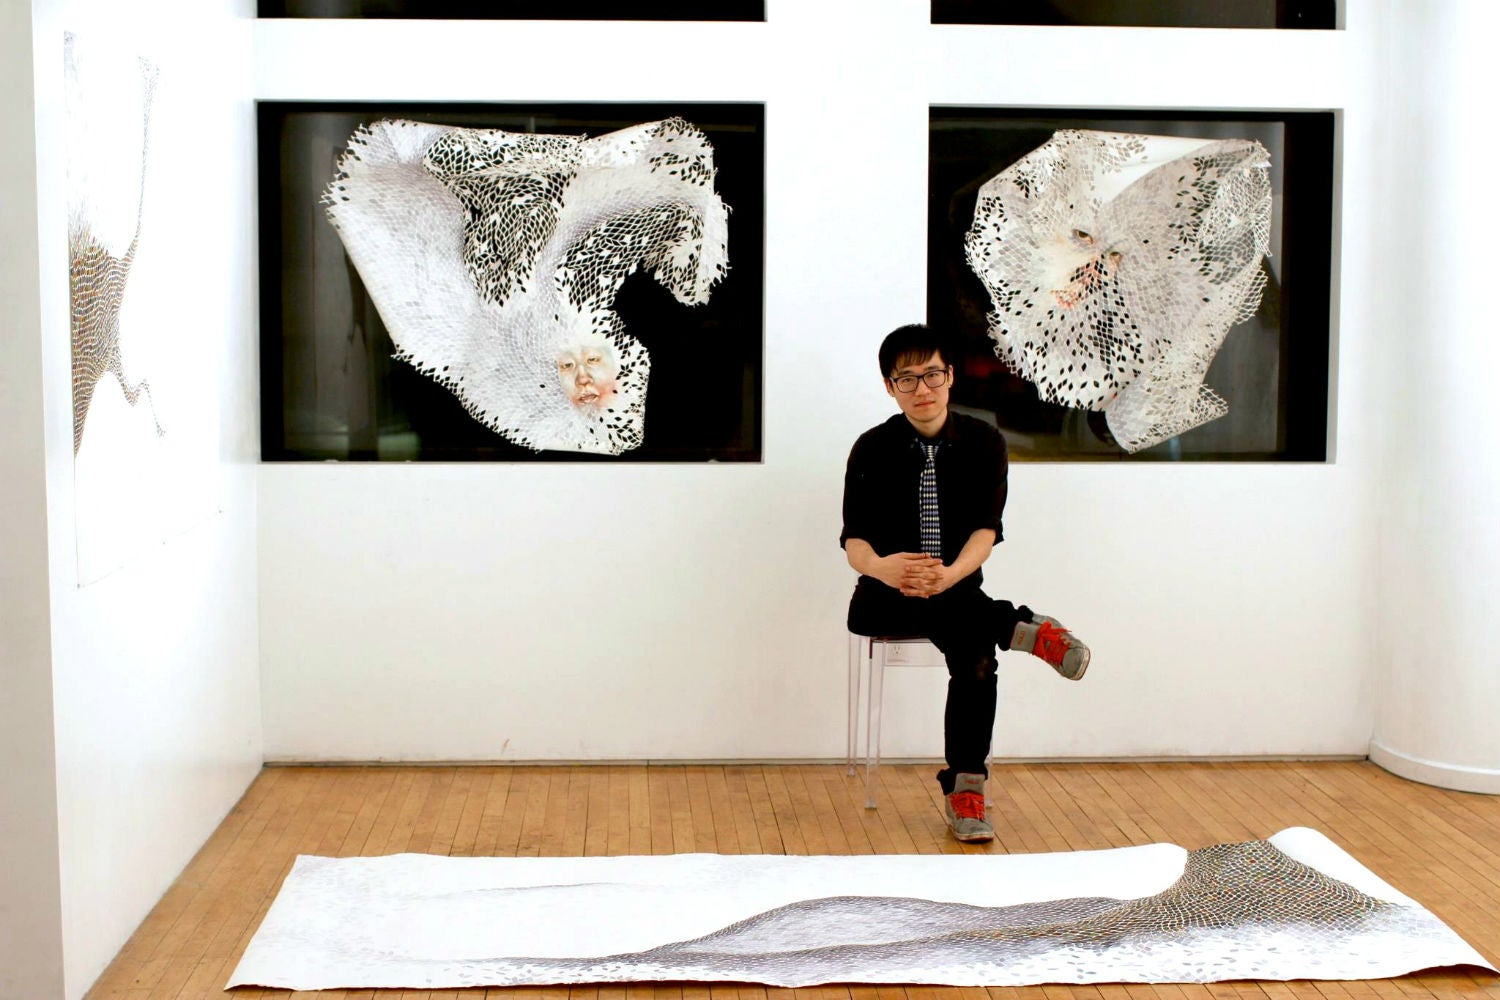 The delicate yet disturbing work of a neuroscientist turned artist